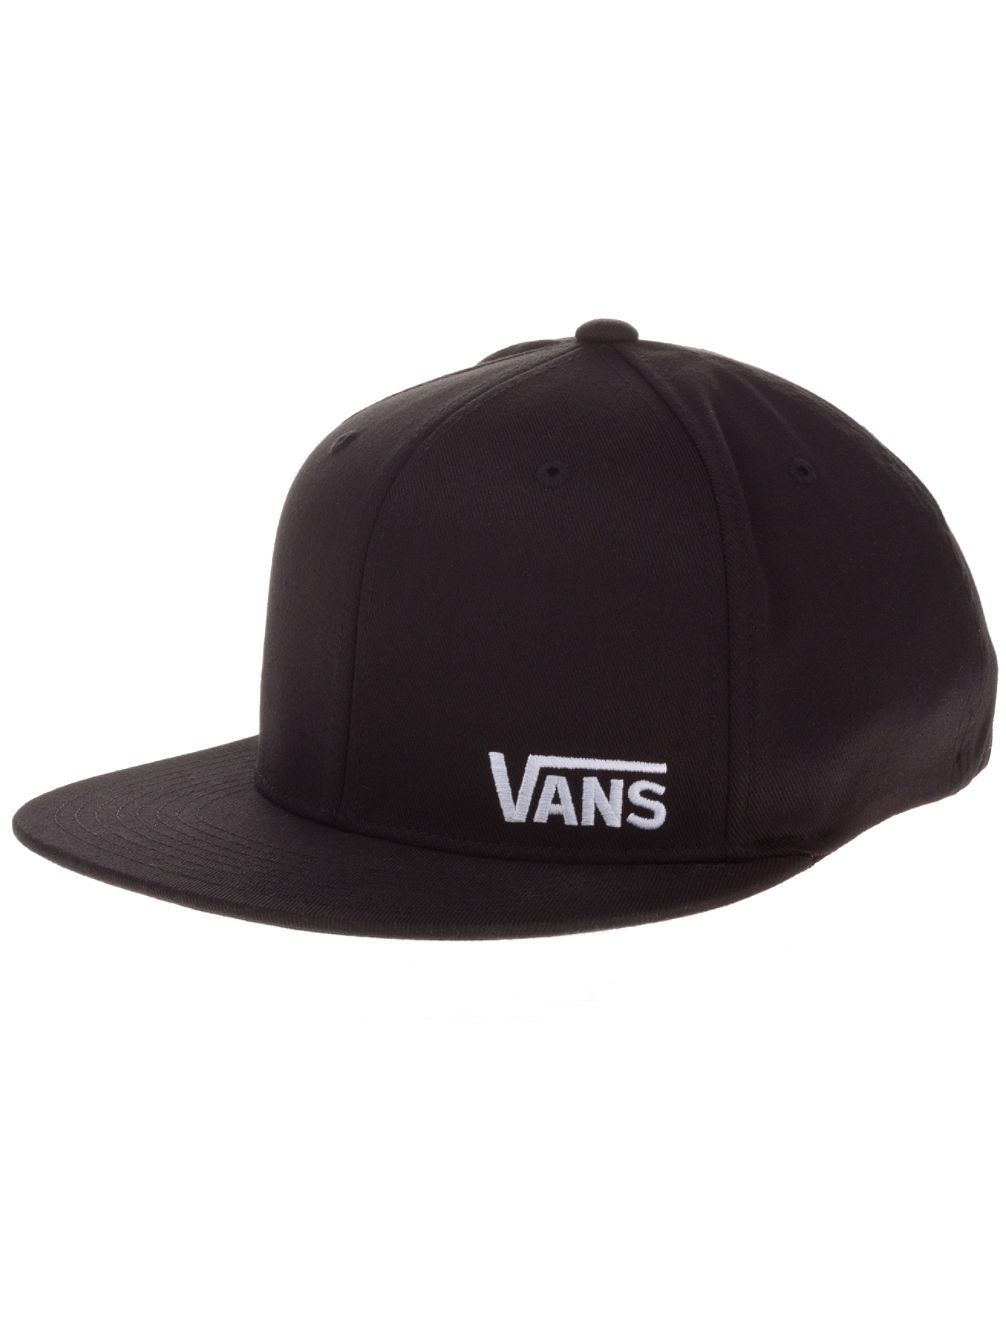 dda798f616 Buy Vans Splitz Cap online at Blue Tomato